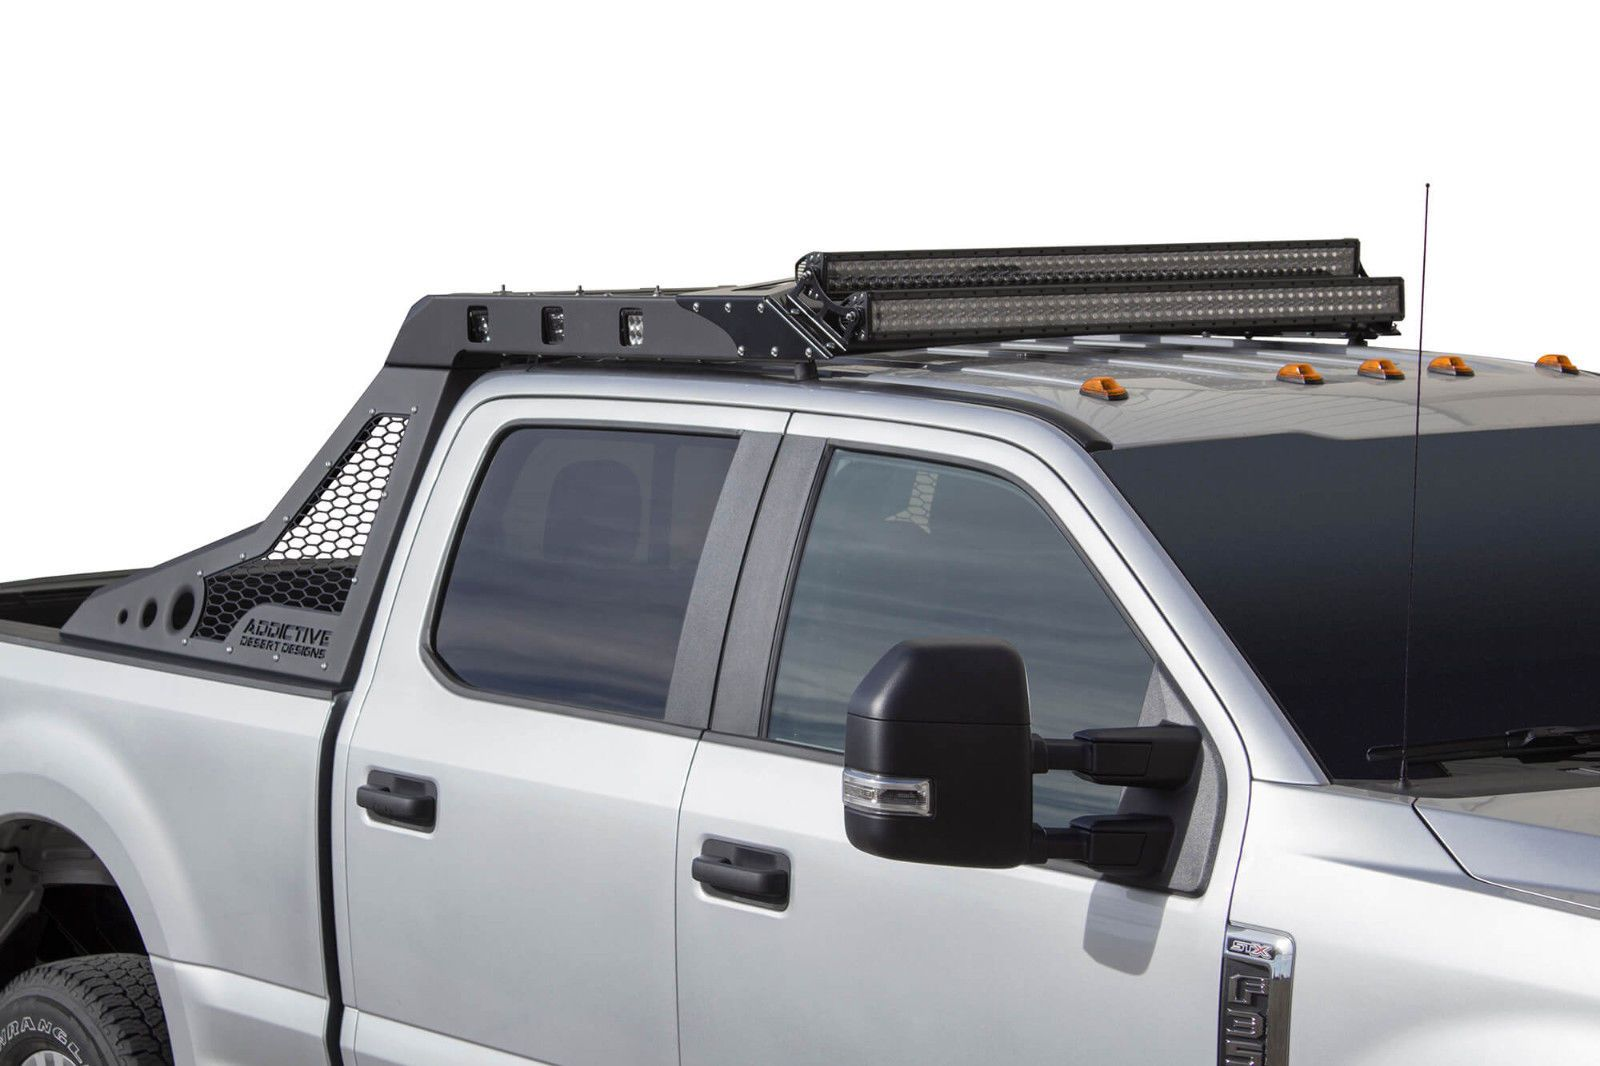 The Honeybadger Chase Rack S Modular Design Allows You To Add What You Want Where You Need It With Three Key Compon Roof Rack Ford Super Duty Truck Roof Rack